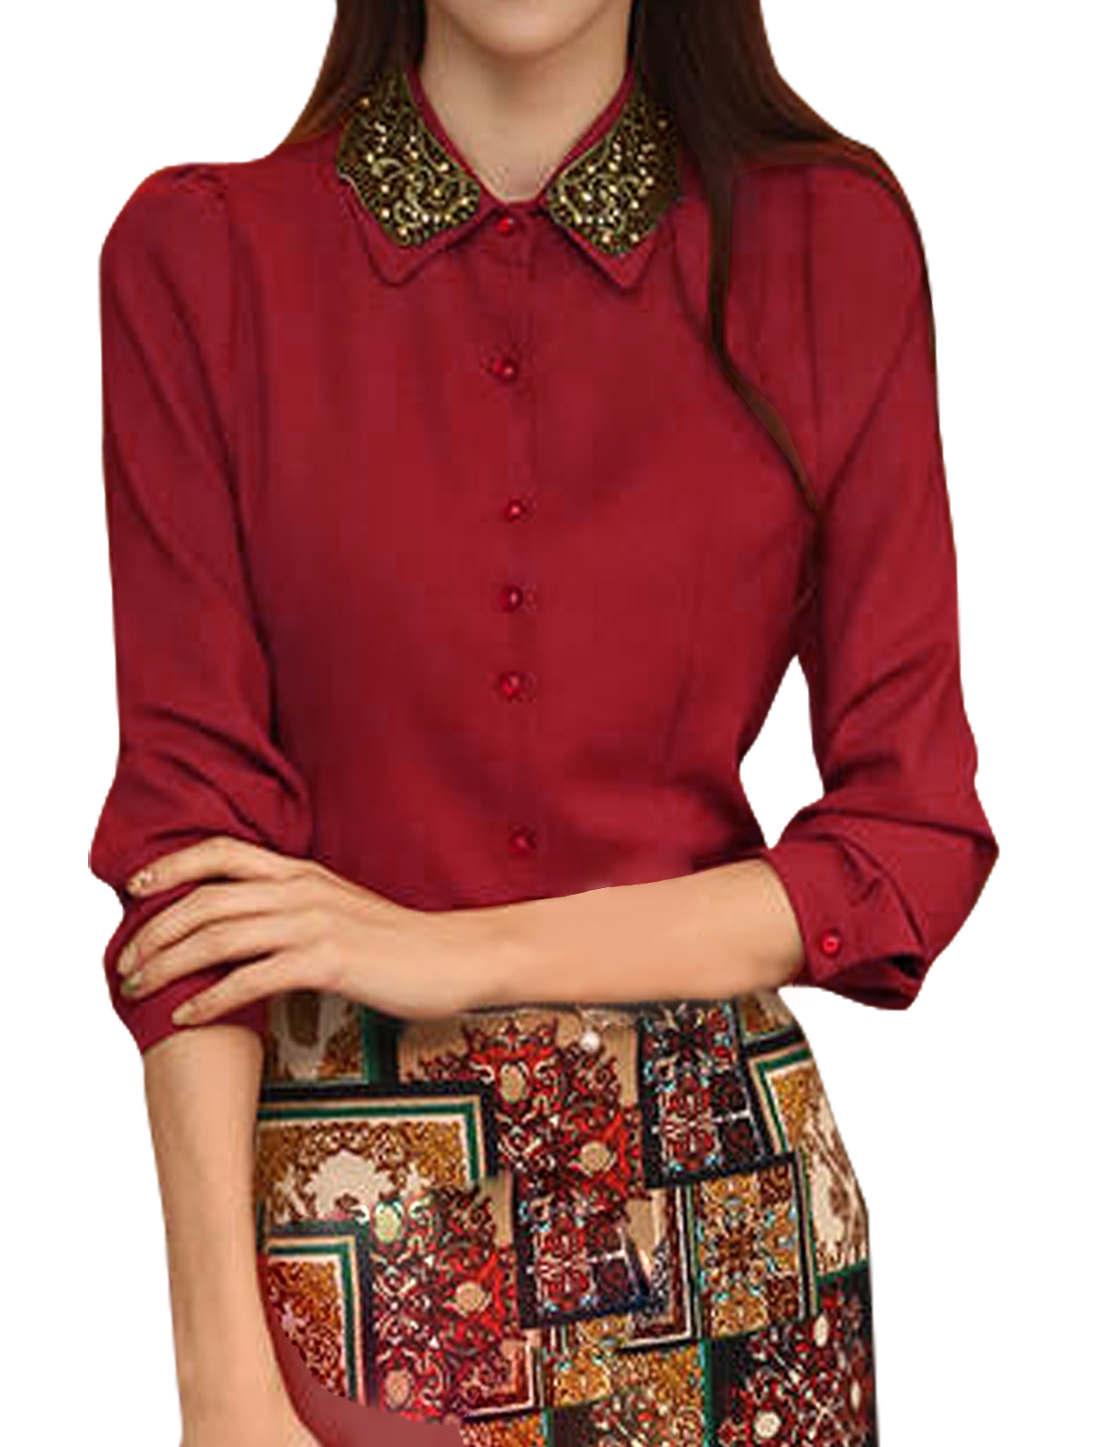 Women Beads Embellished Point Collar Button Down Shirt Red M